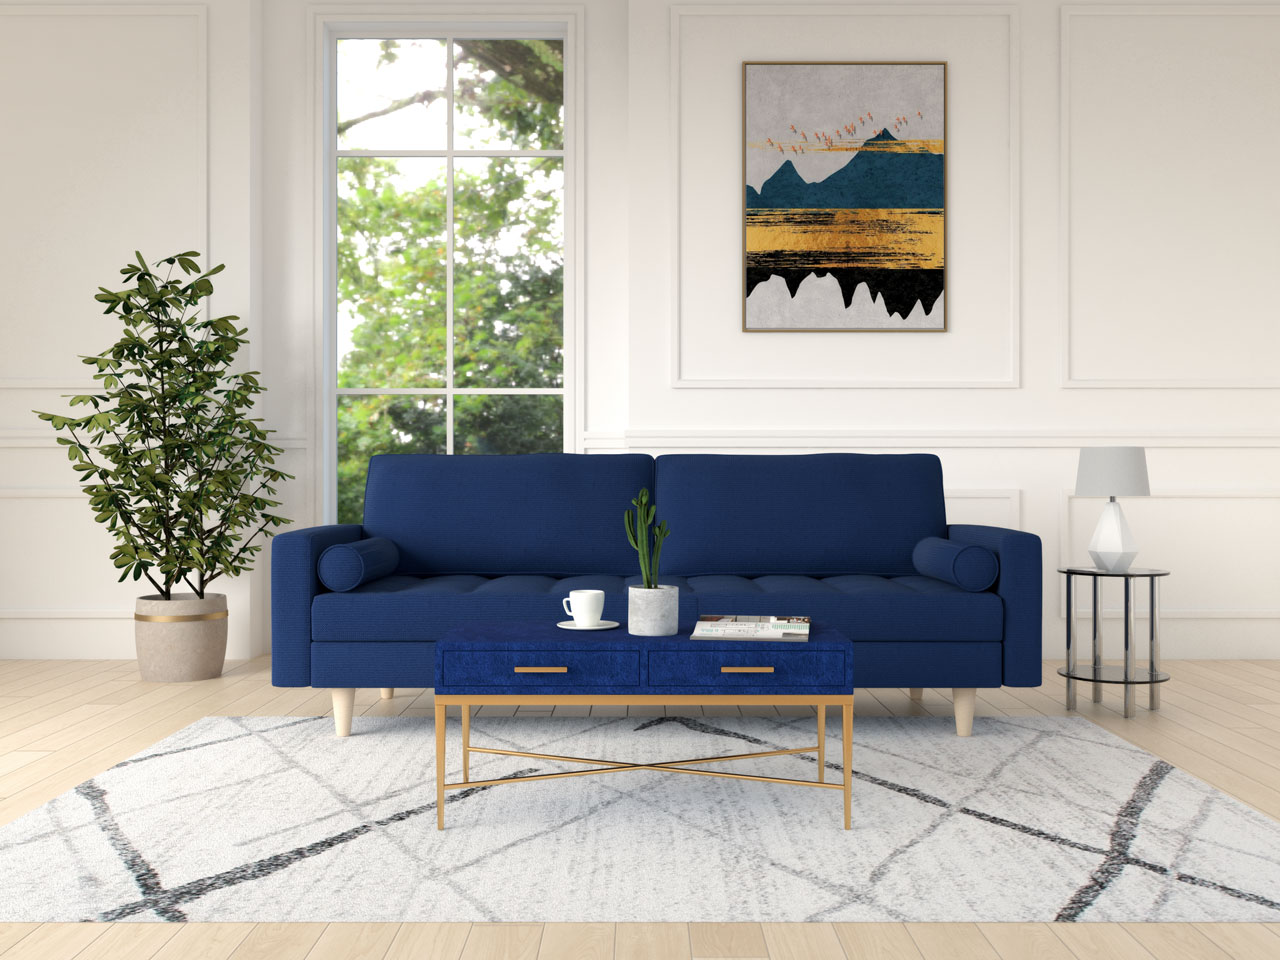 Blue and gold coffee table with a blue couch